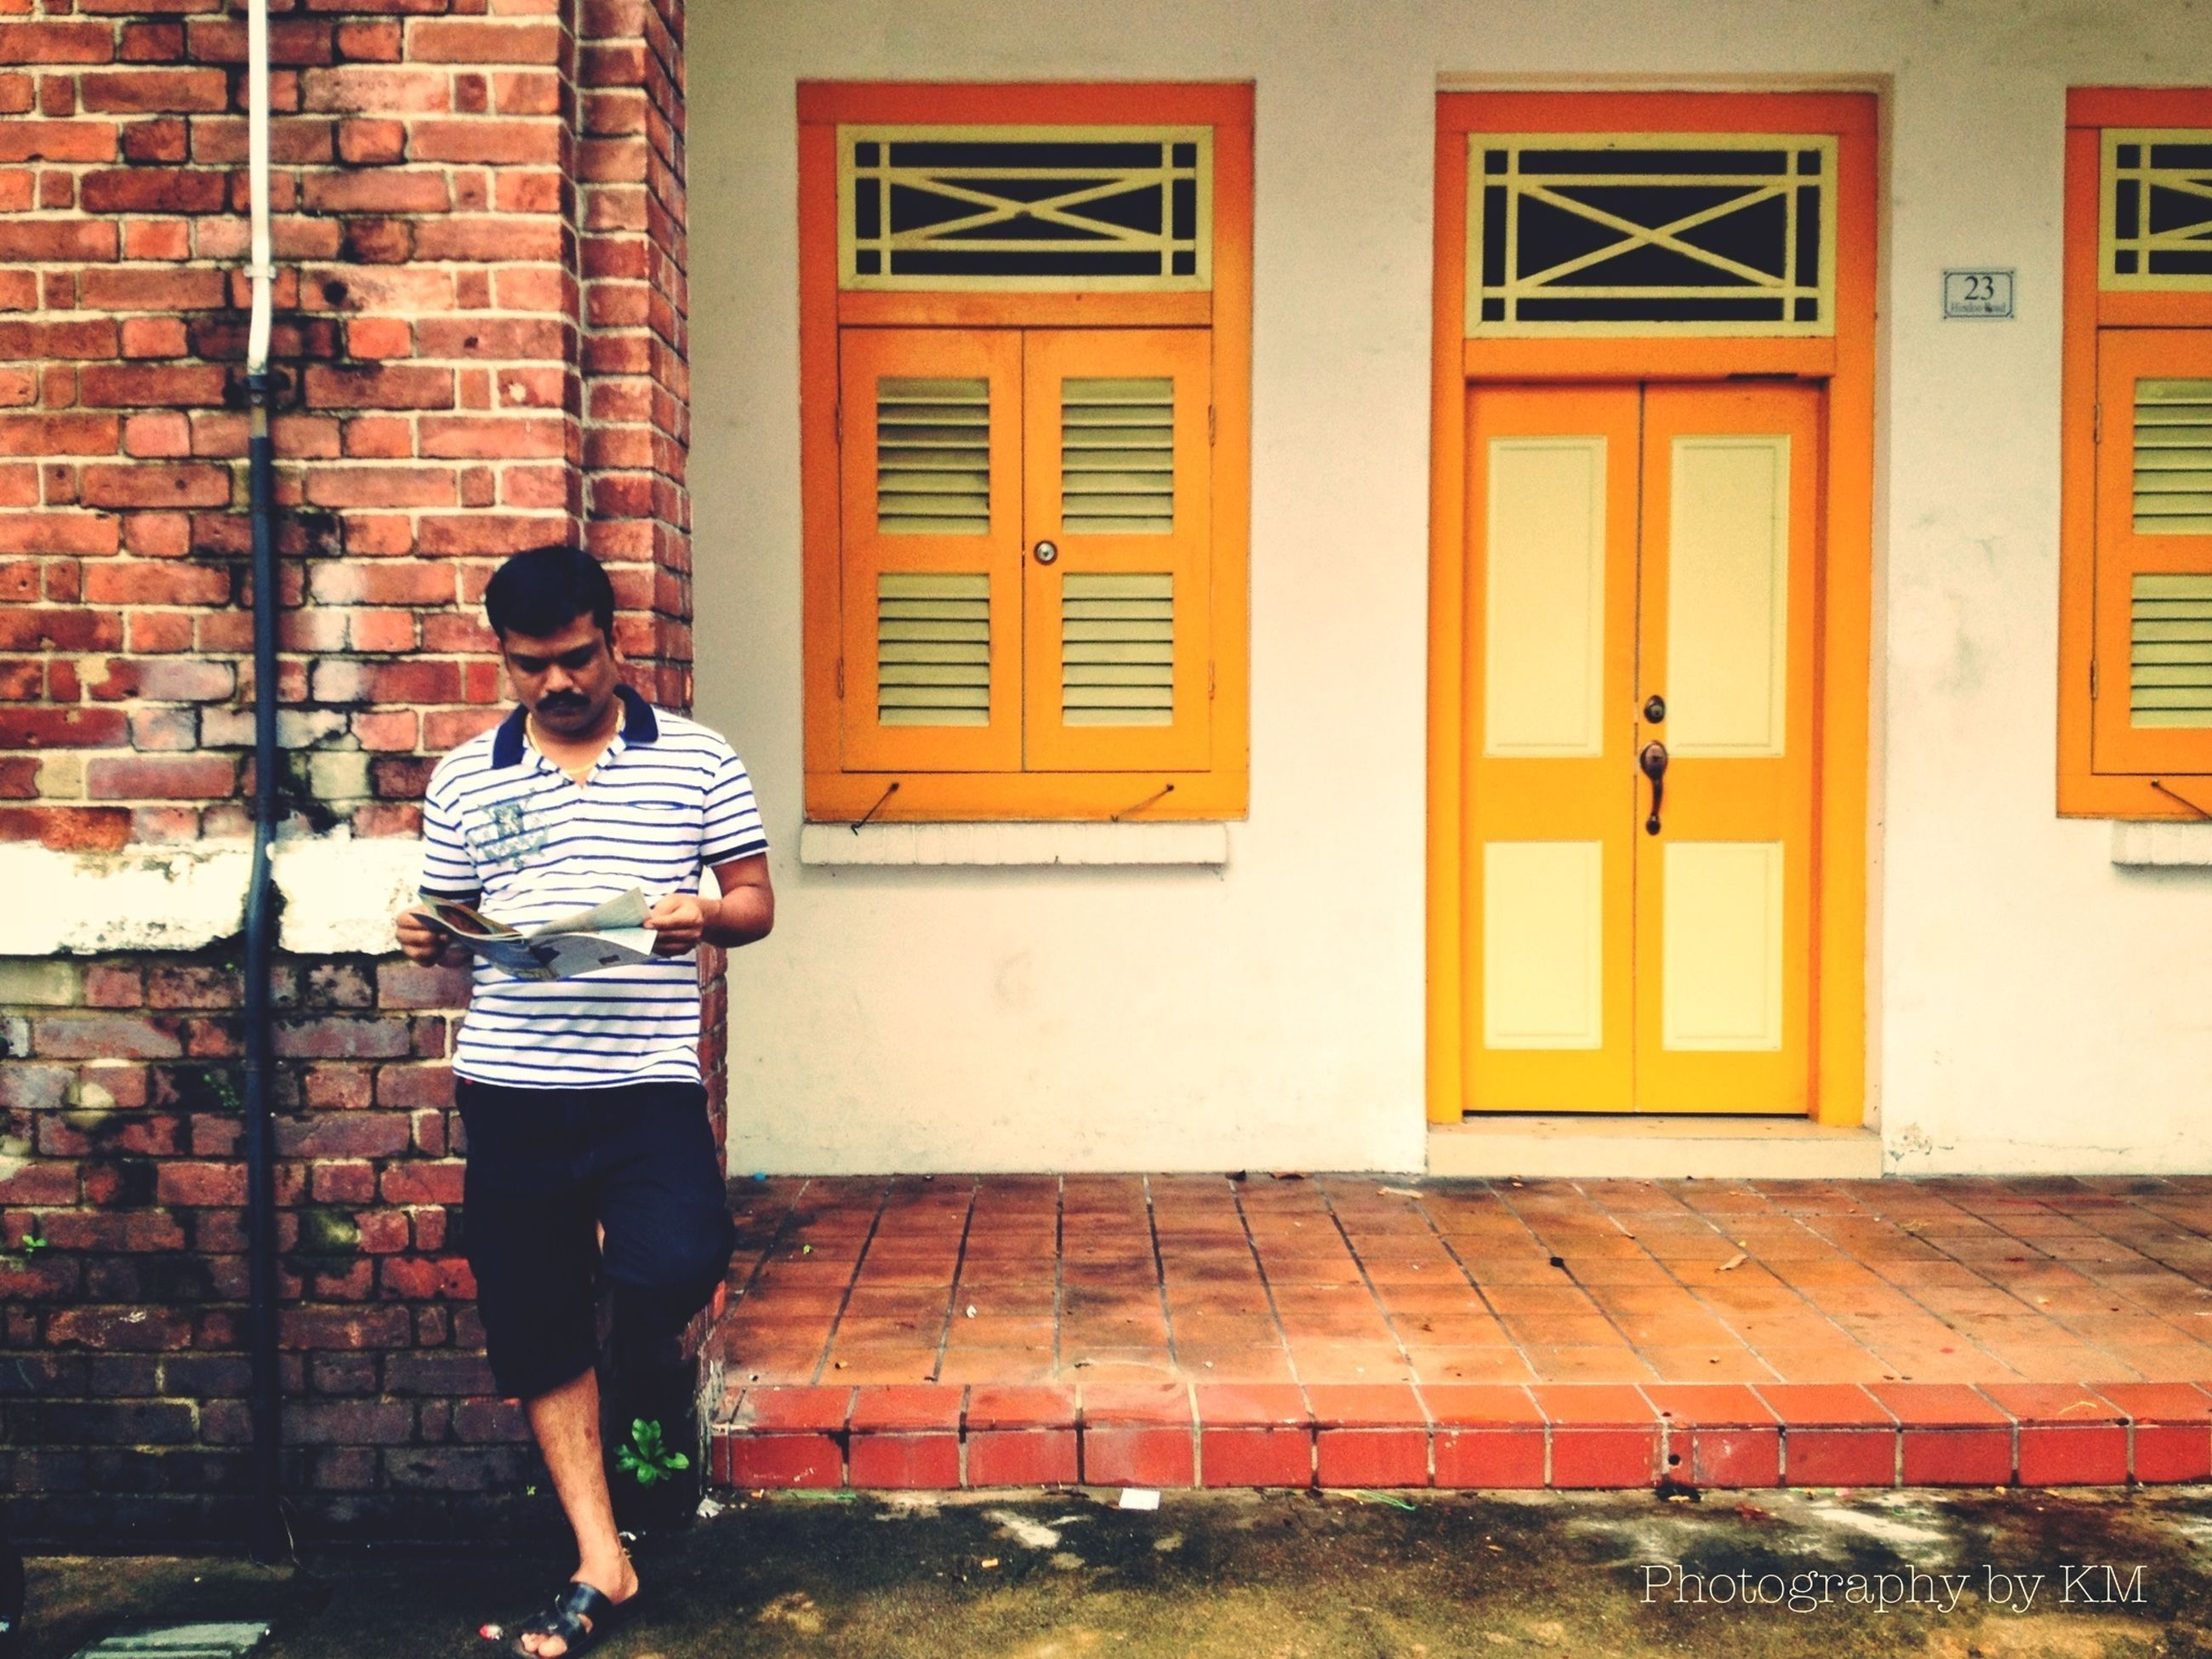 full length, lifestyles, casual clothing, building exterior, architecture, built structure, leisure activity, standing, side view, person, walking, childhood, wall - building feature, brick wall, elementary age, three quarter length, front view, boys